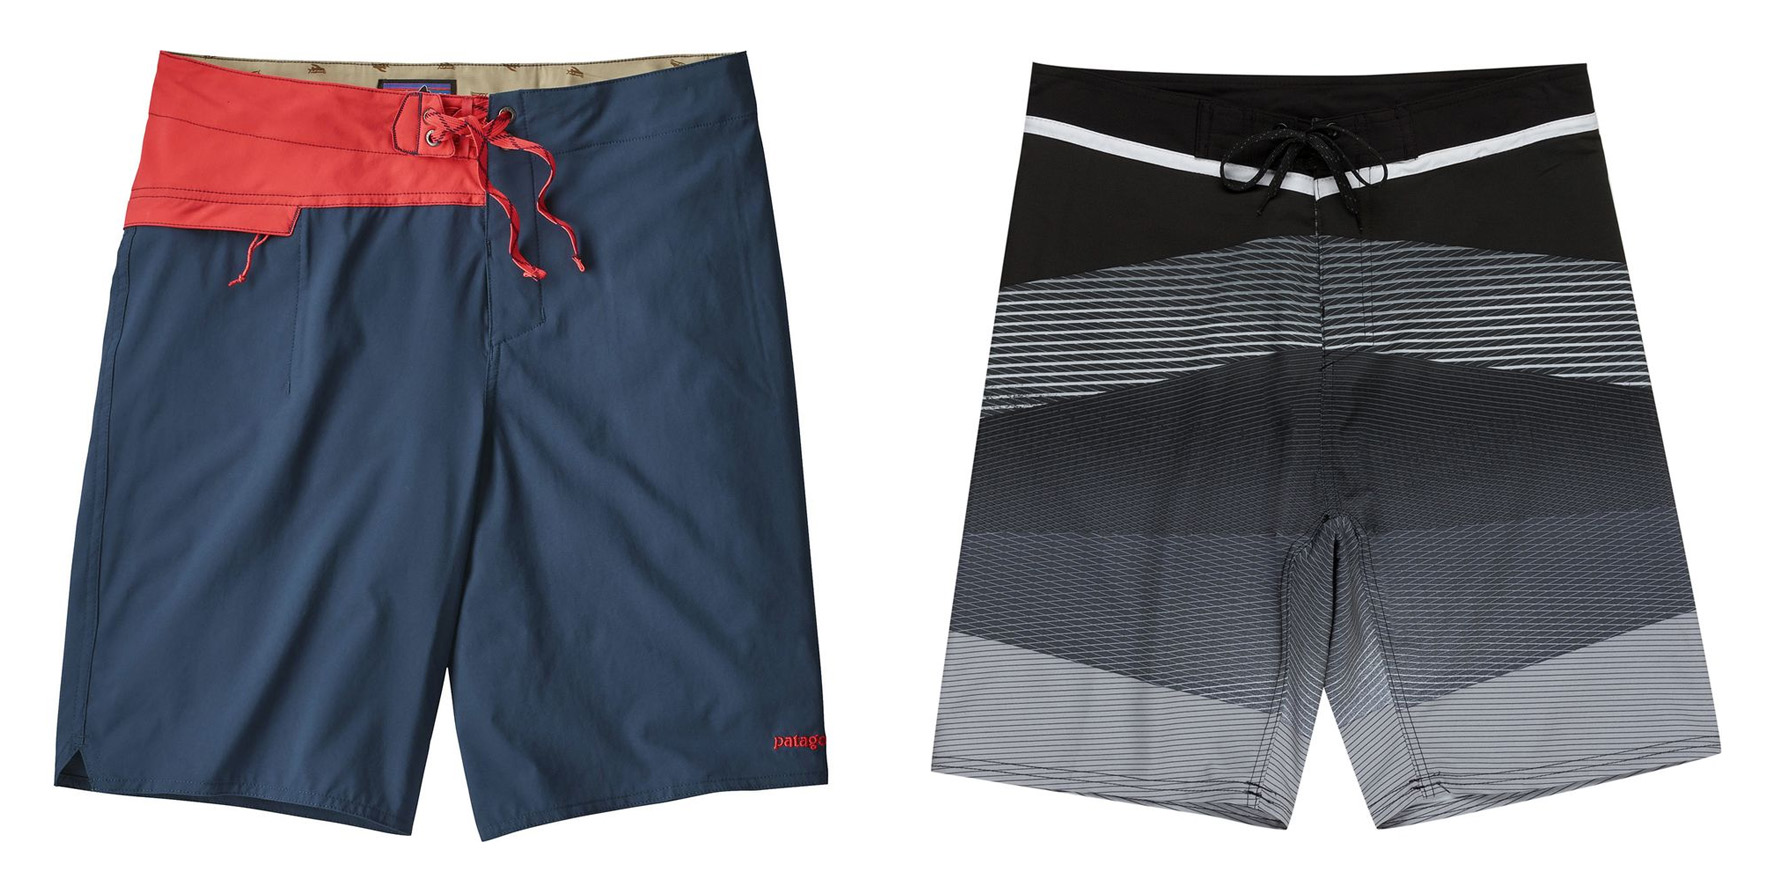 Patagonia, Hurley, Quicksilver, Volcom & more swimwear at up to 70% off from $17